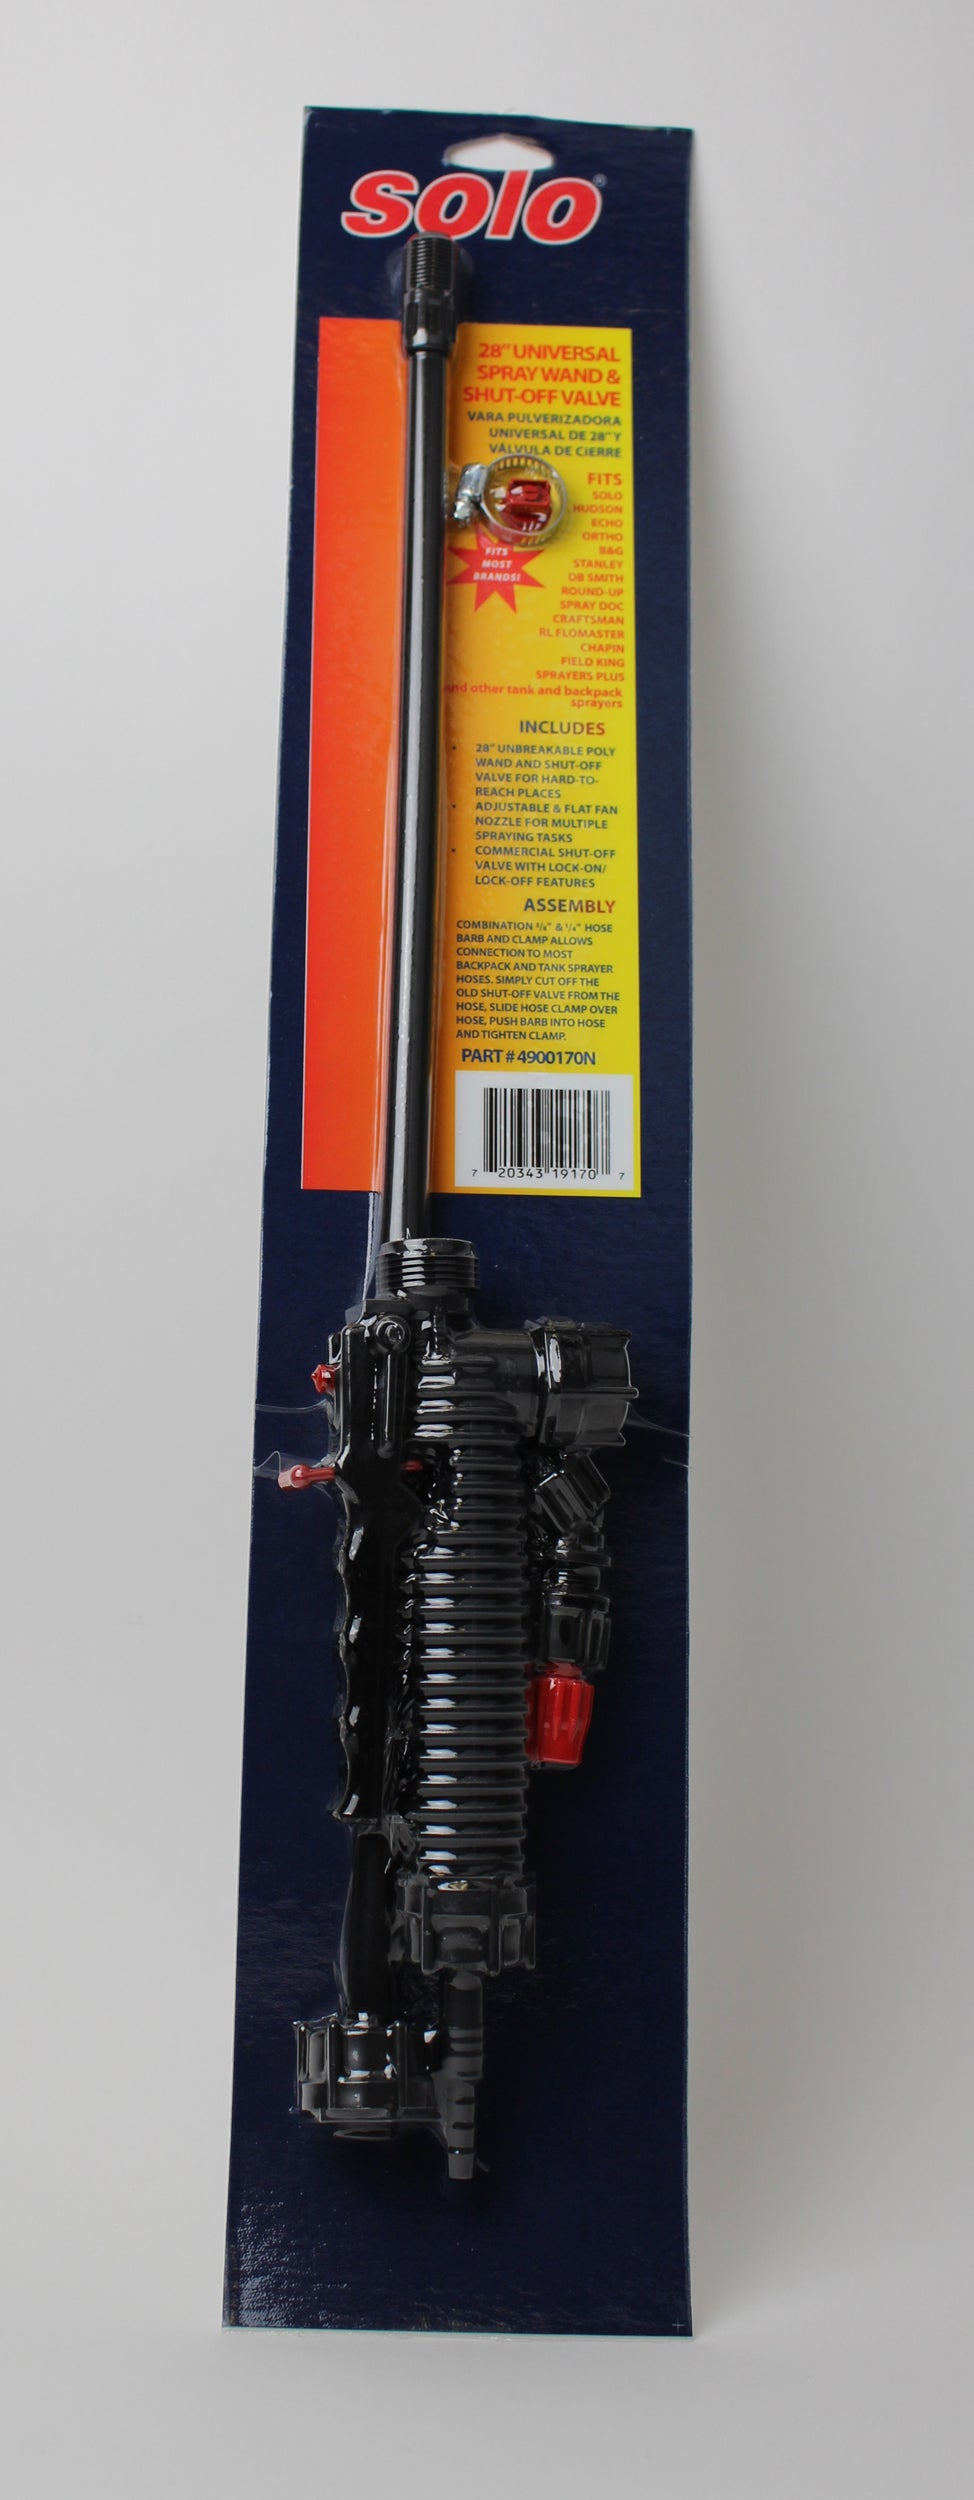 Solo Unbreakable Wand Assembly 4900170N